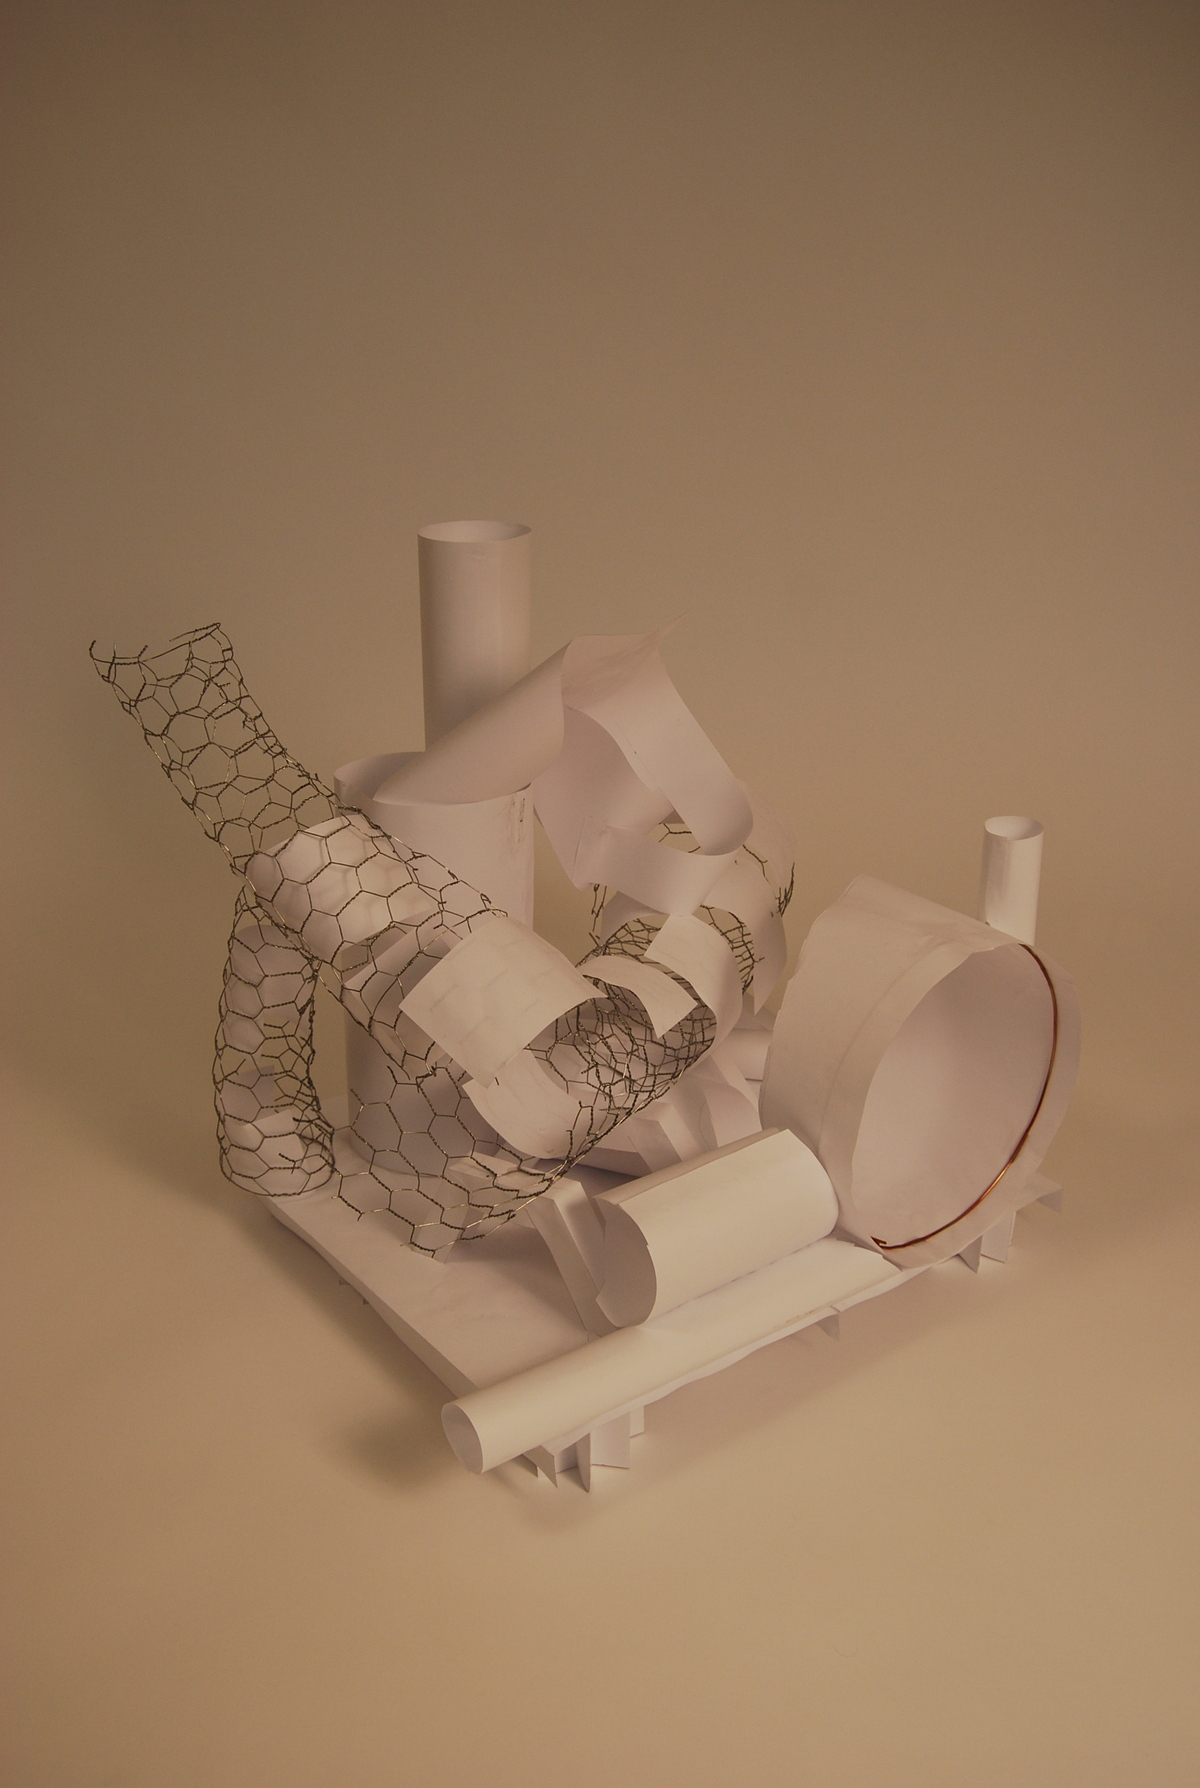 Refined concept model in rolled paper and wire mesh